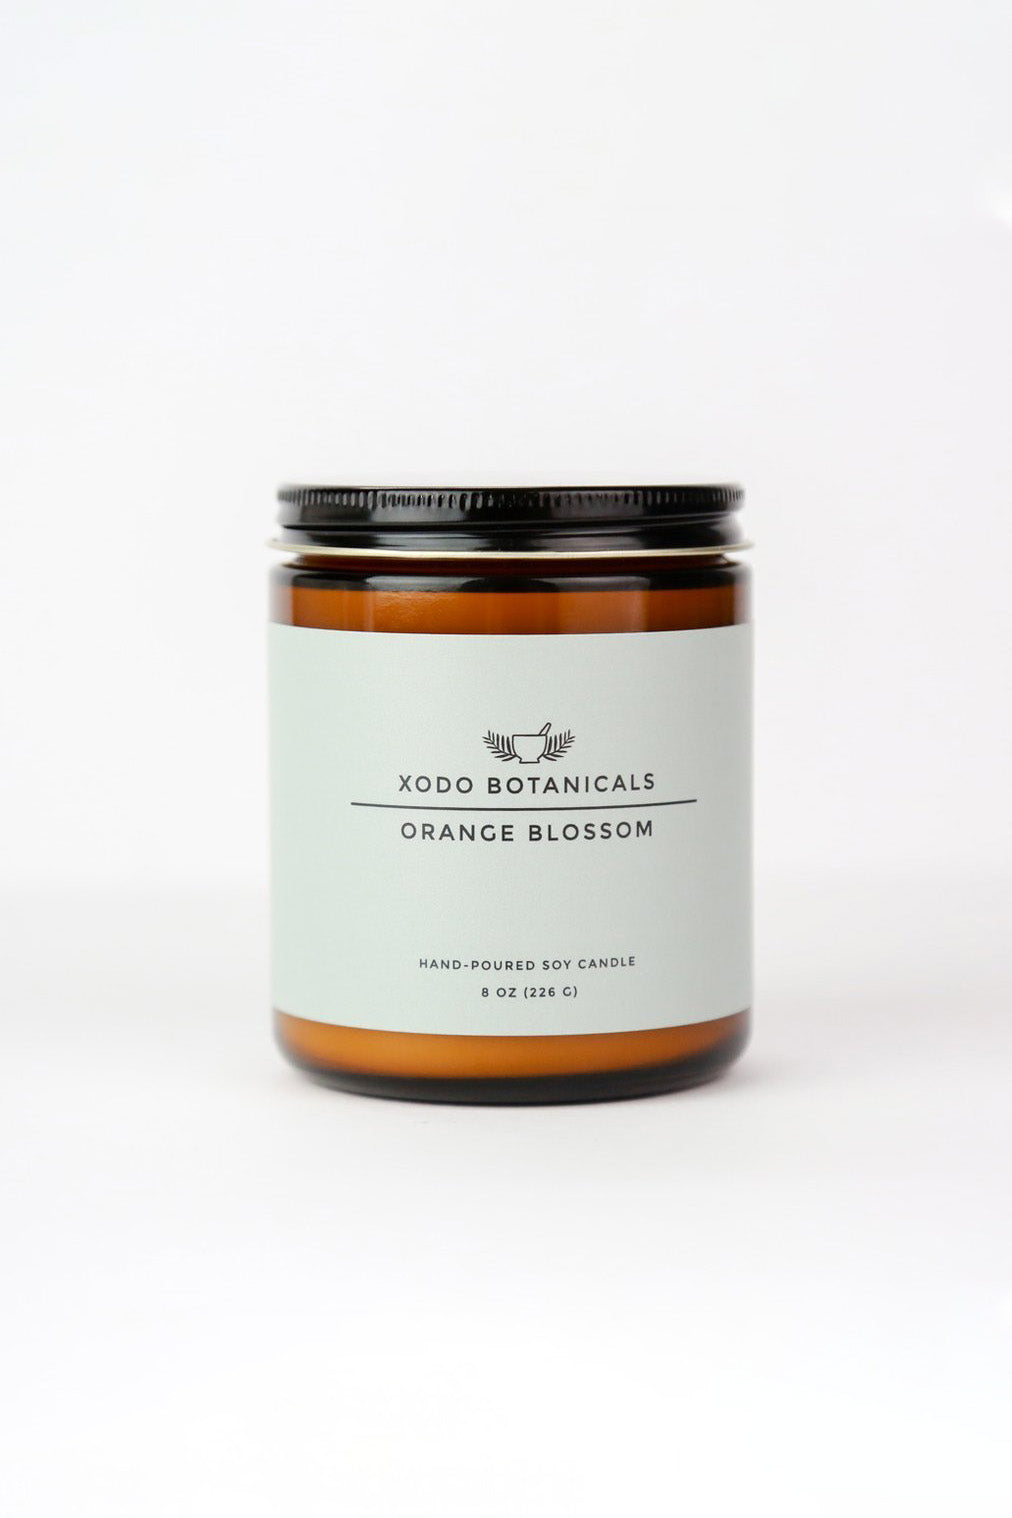 XODO BOTANICALS Orange Blossom Soy Candle